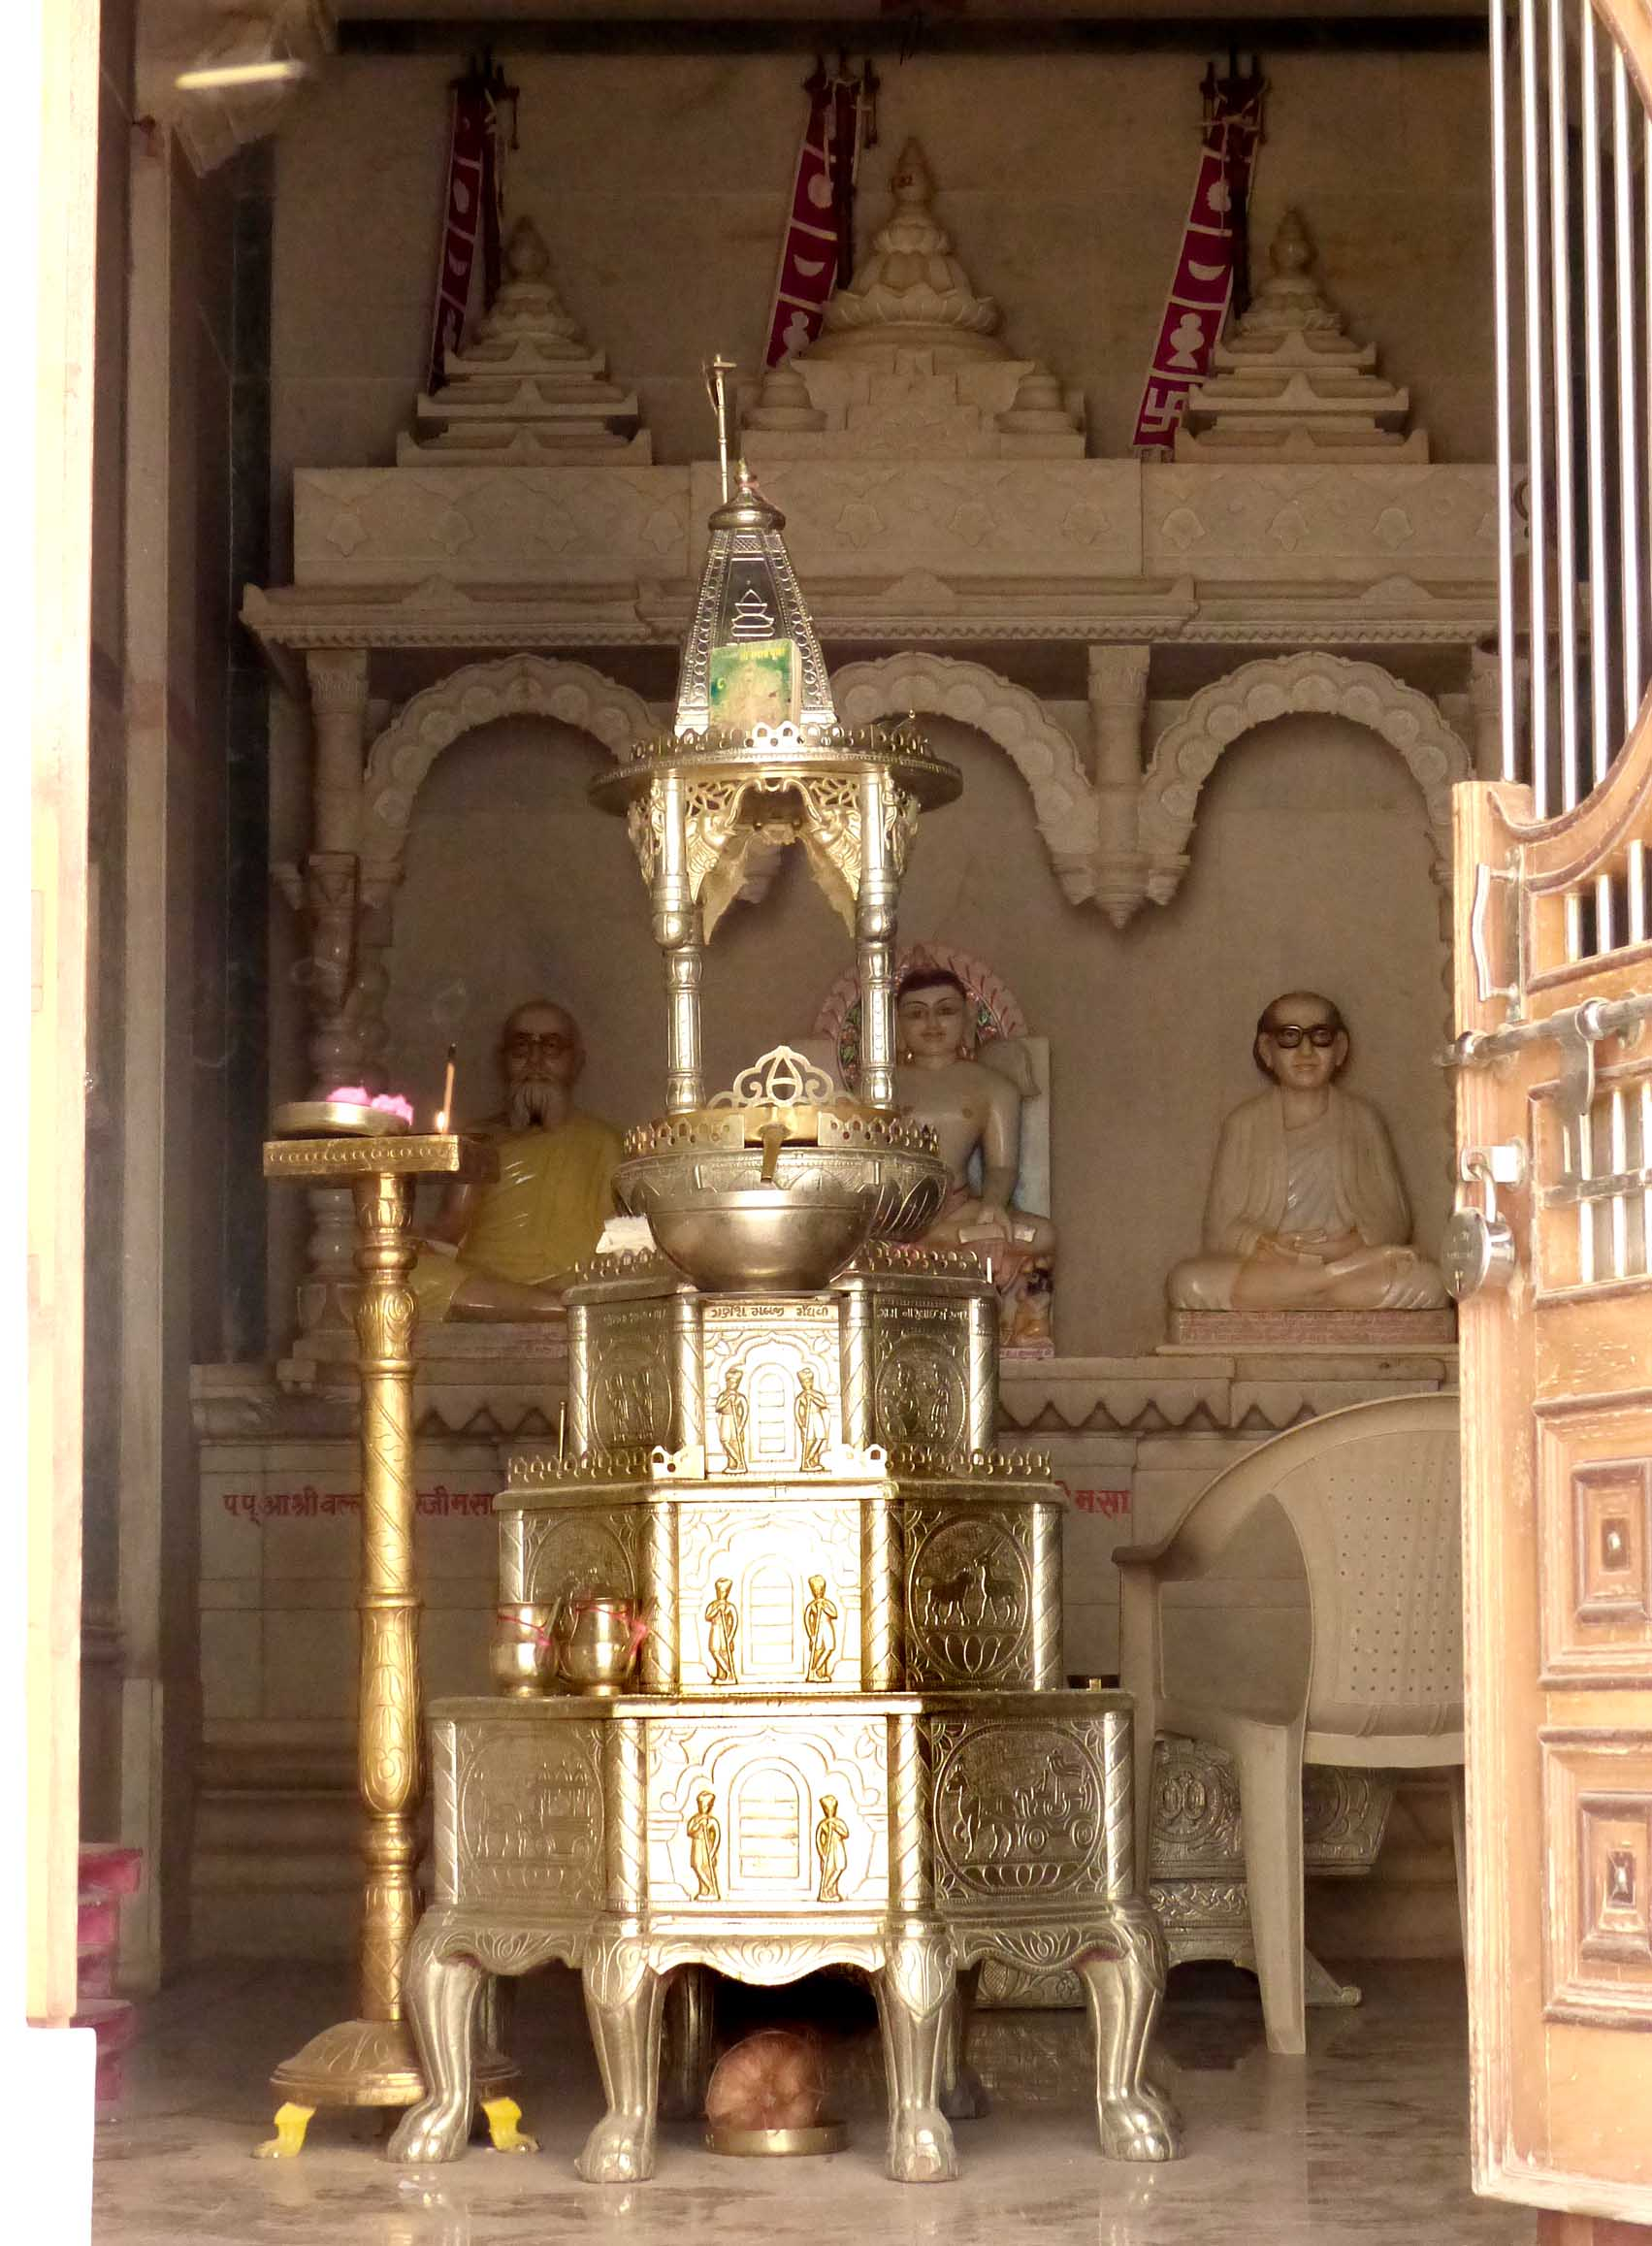 Small shrine with statues